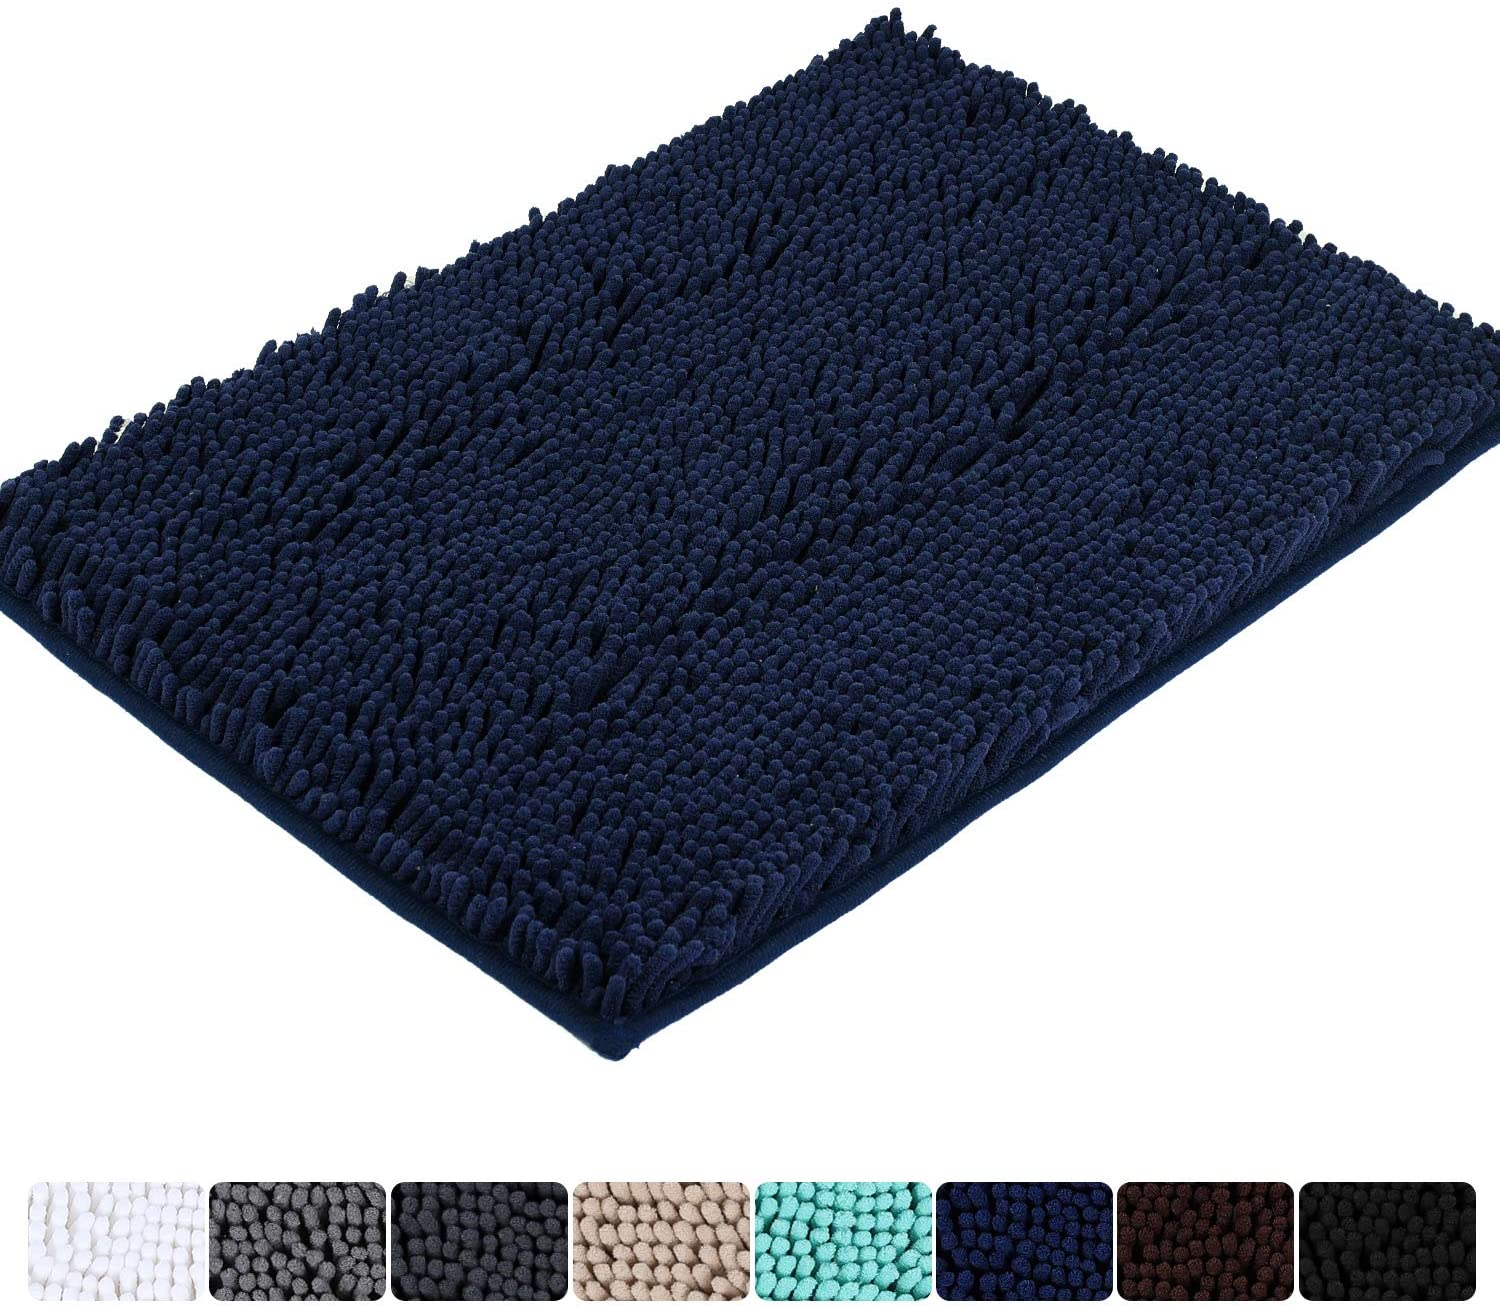 Colorxy Luxury Chenille Bathroom Rugs - Solid Shaggy Washable Bath Mat Non Slip Bath Room Runner, Ultra Soft, Plush Bathmat for Bathroom Shower with Water Absorbent Memory Foam, 20''x32'', Navy